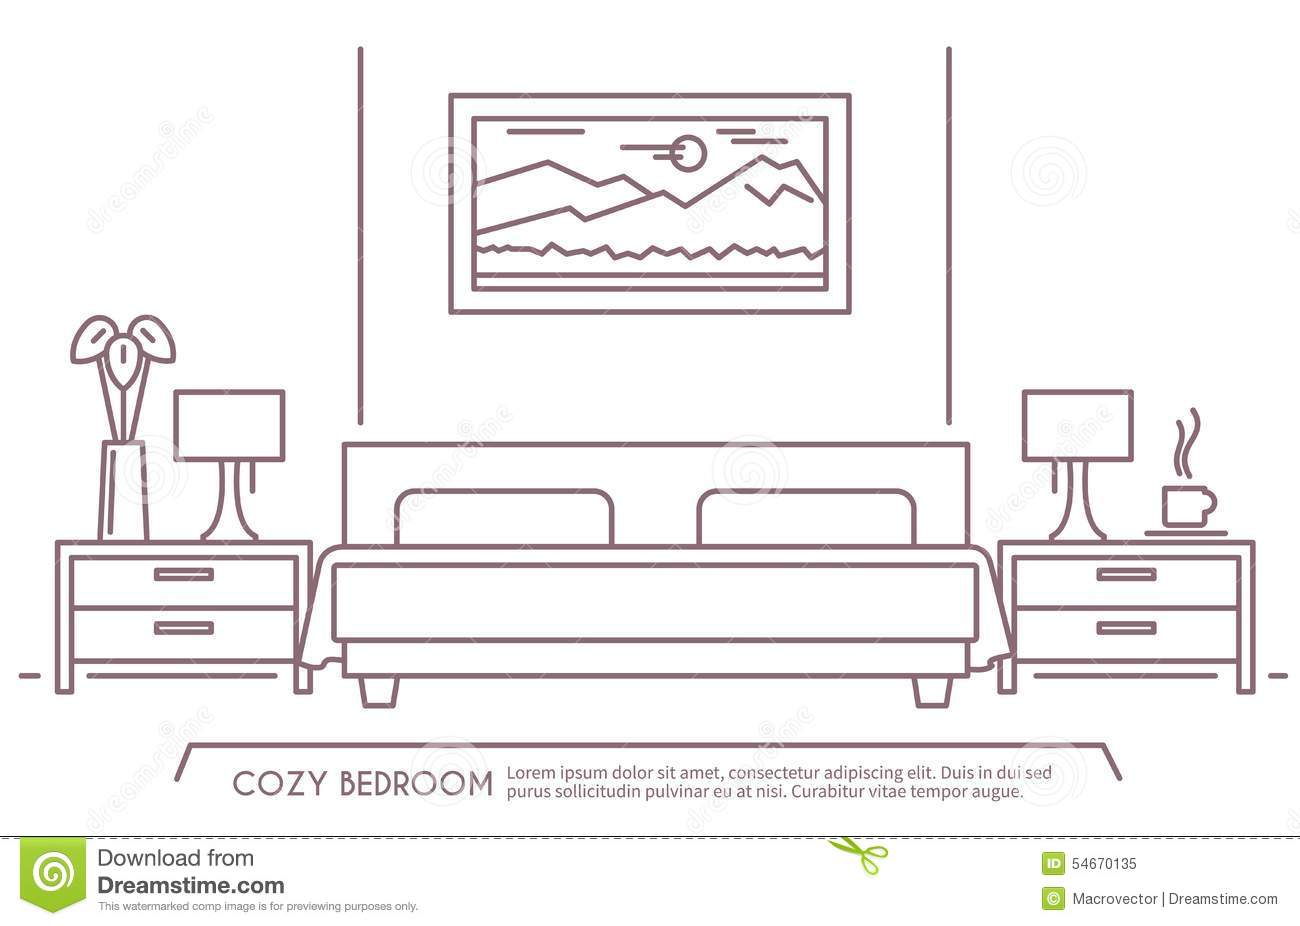 Bedroom Furniture Outline Stock Vector Illustration Of: free room layout template